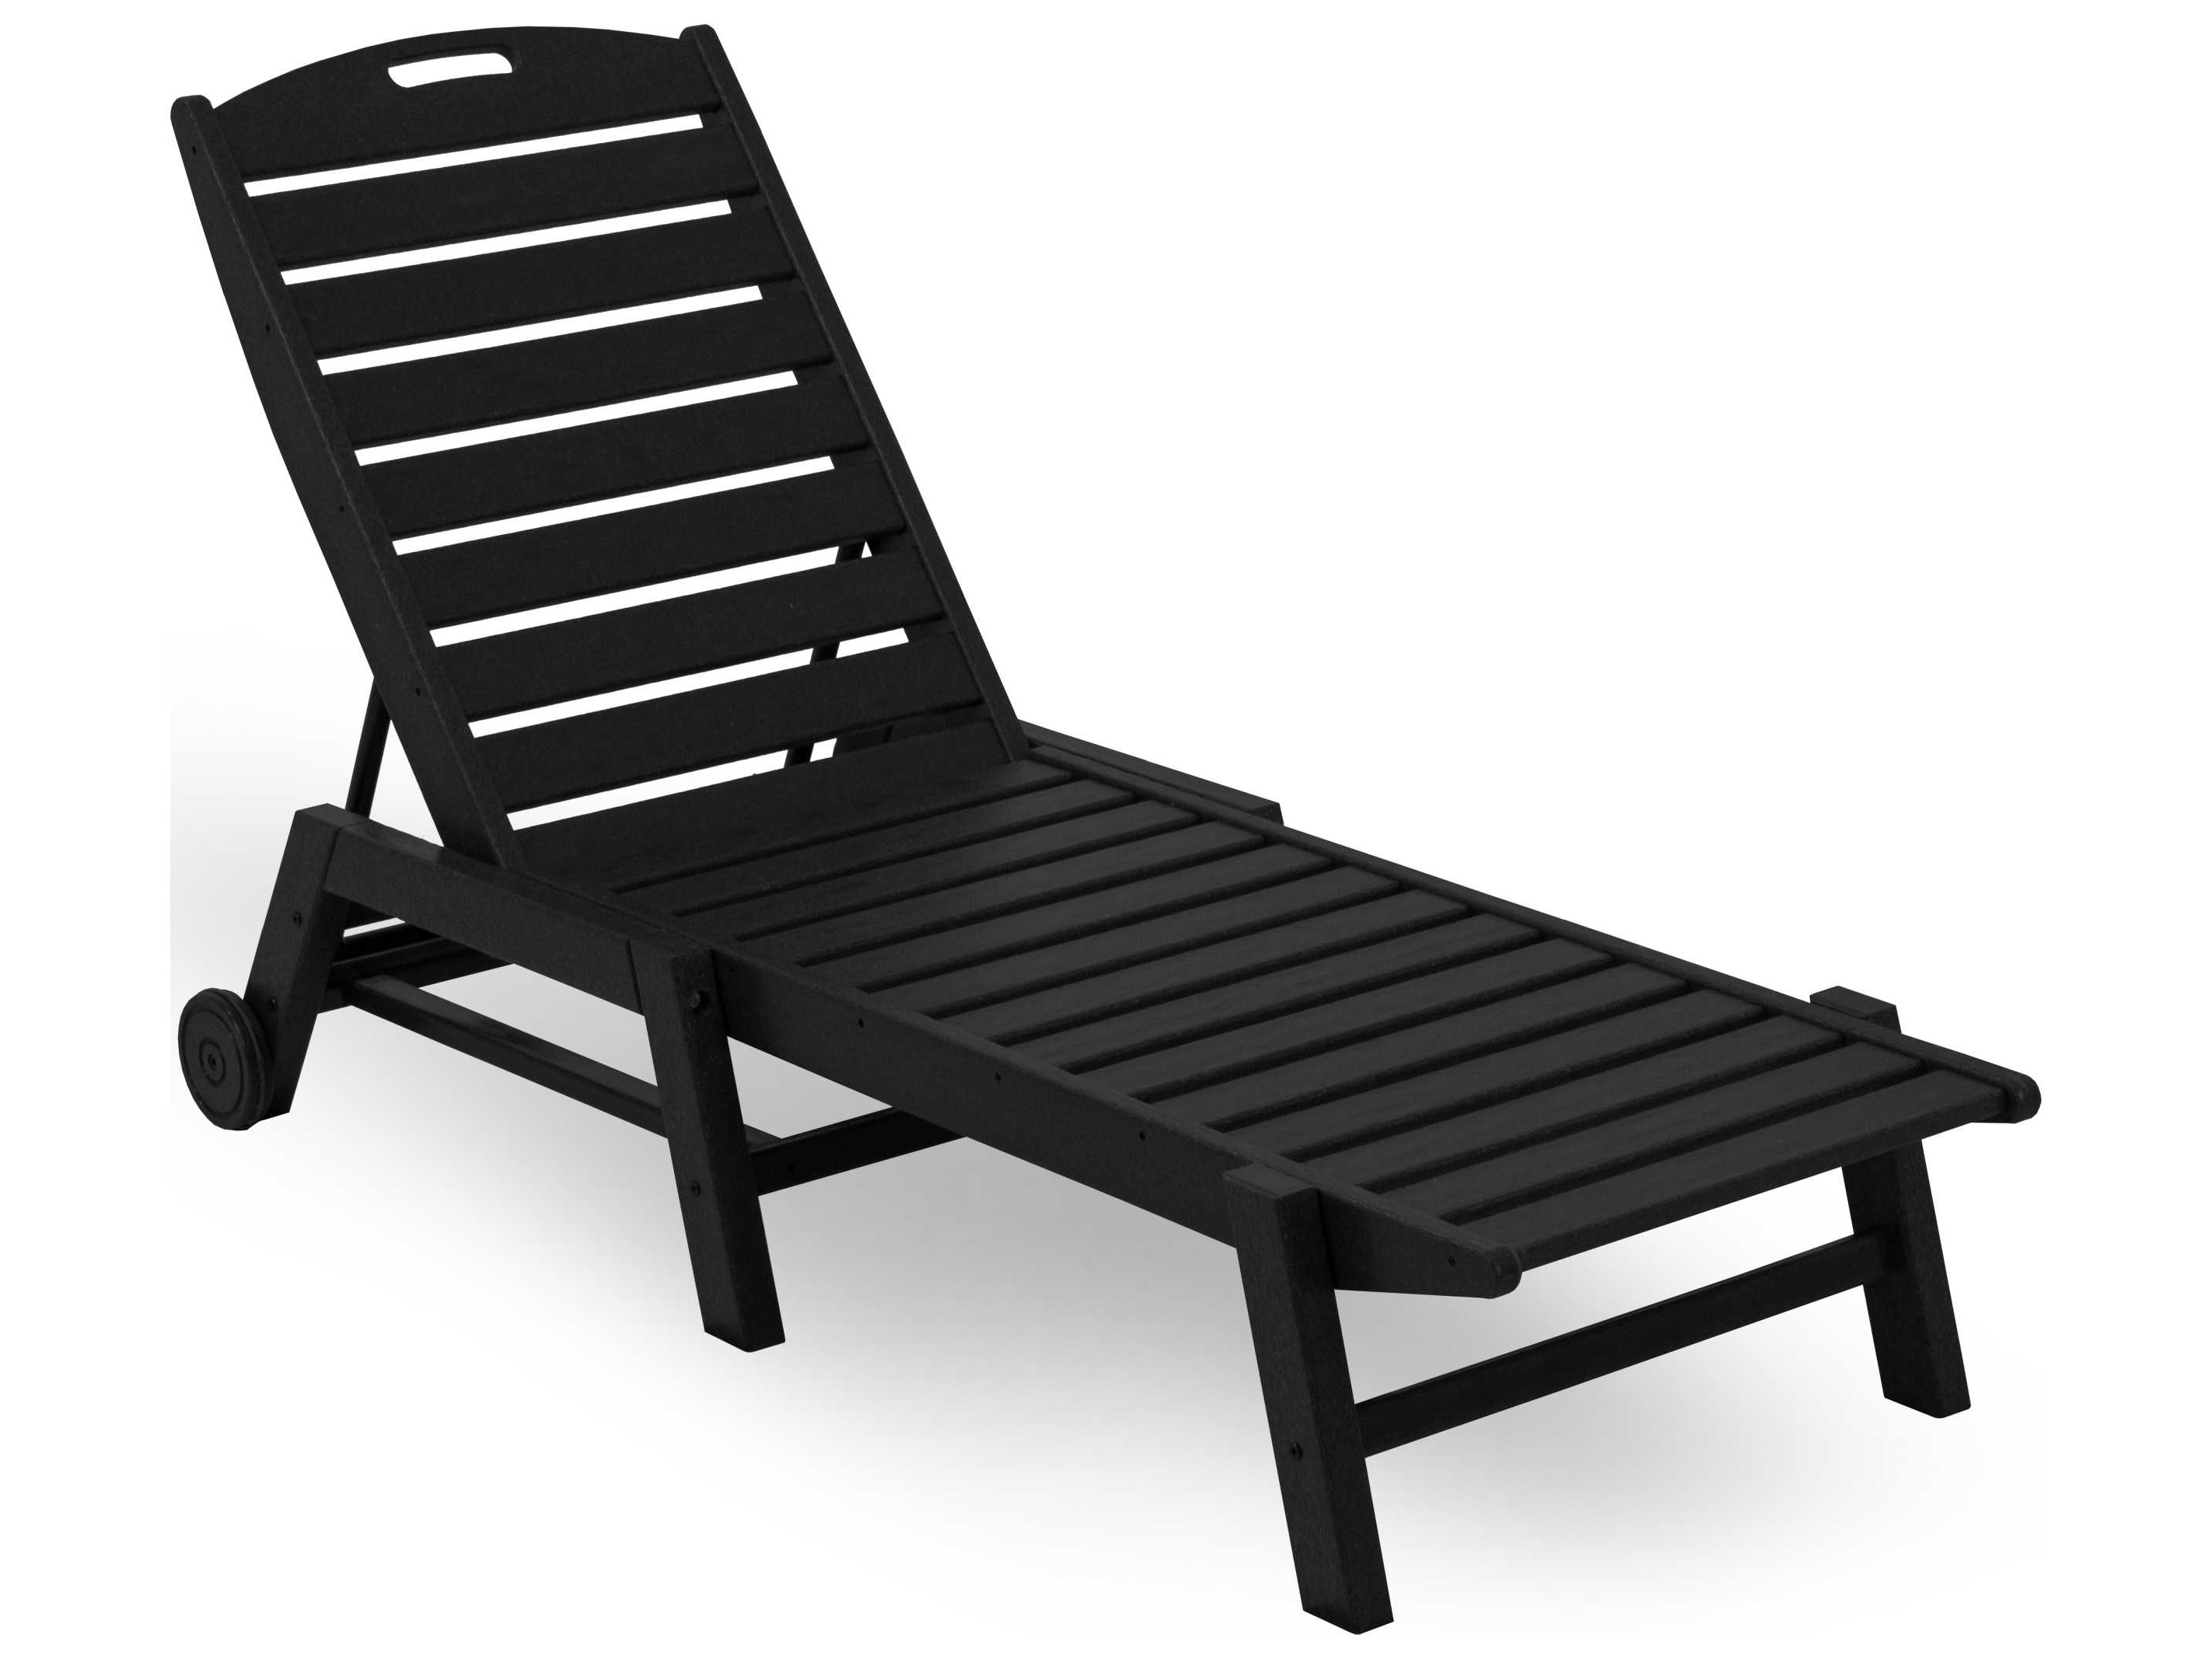 Stackable Nautical Outdoor Chaise Lounges In Favorite Polywood® Nautical Recycled Plastic Stackable Chaise Lounge (View 6 of 25)